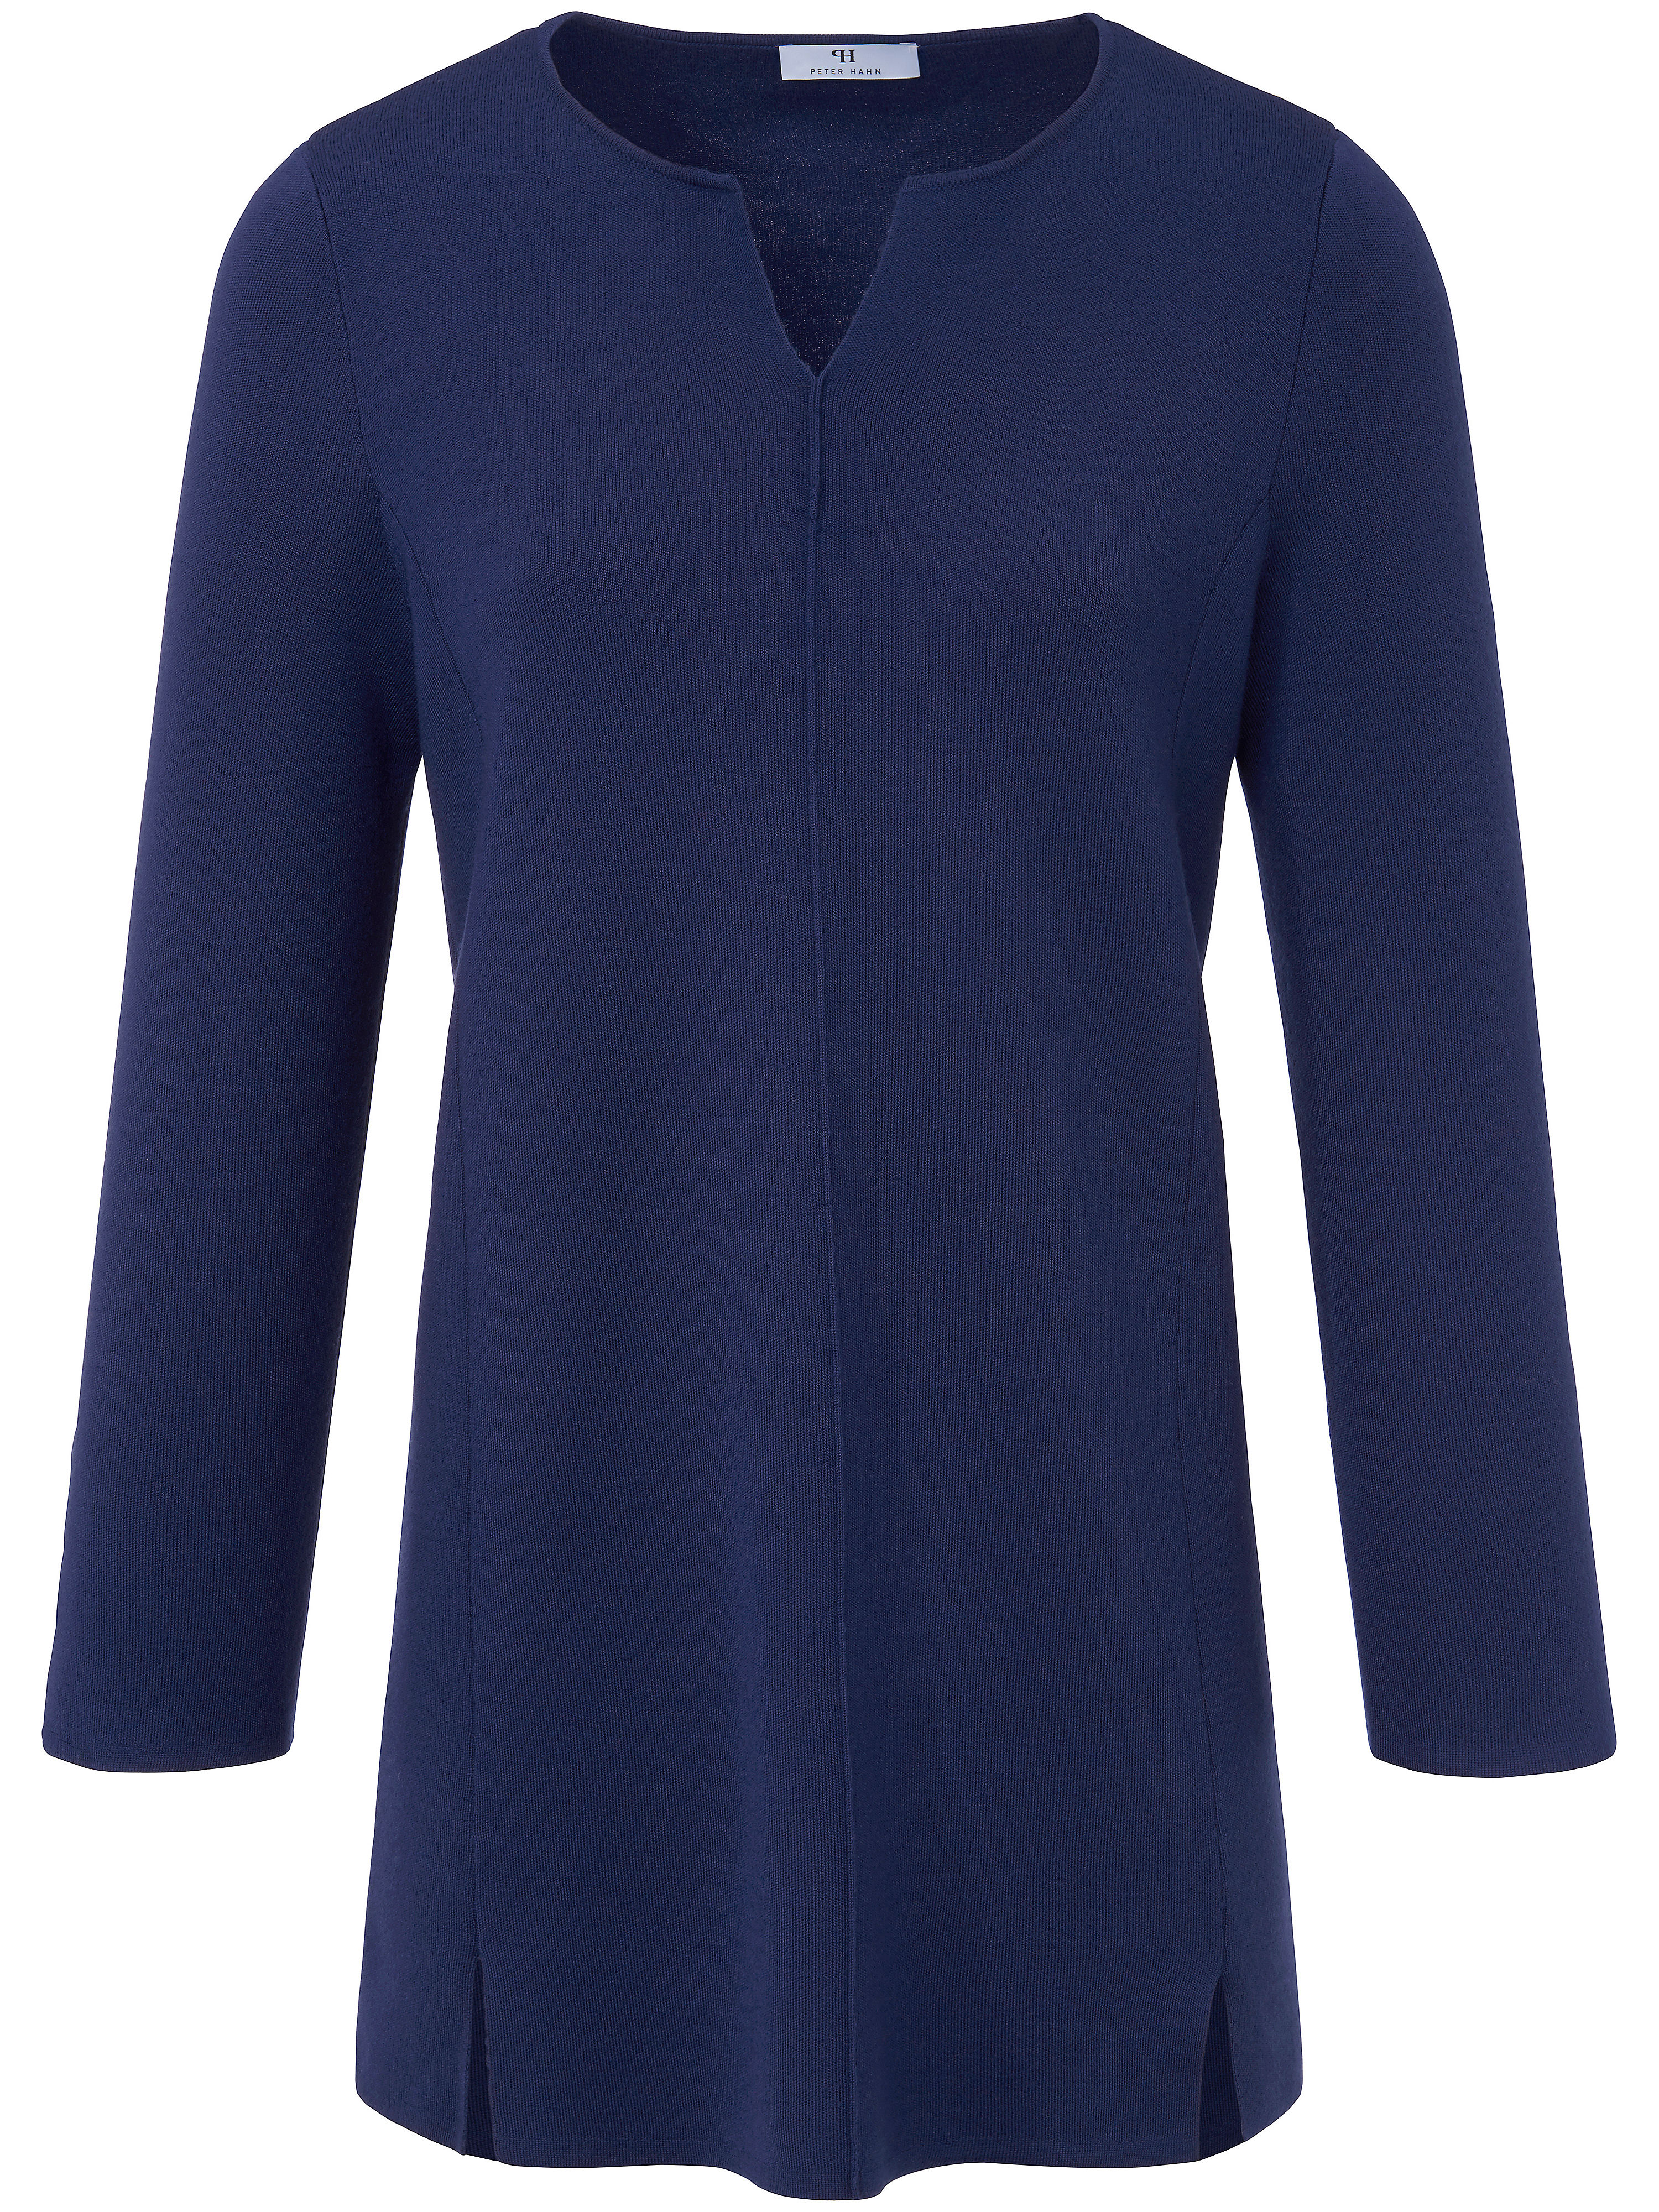 Le pull manches 7/8 100% laine vierge  Peter Hahn bleu taille 38